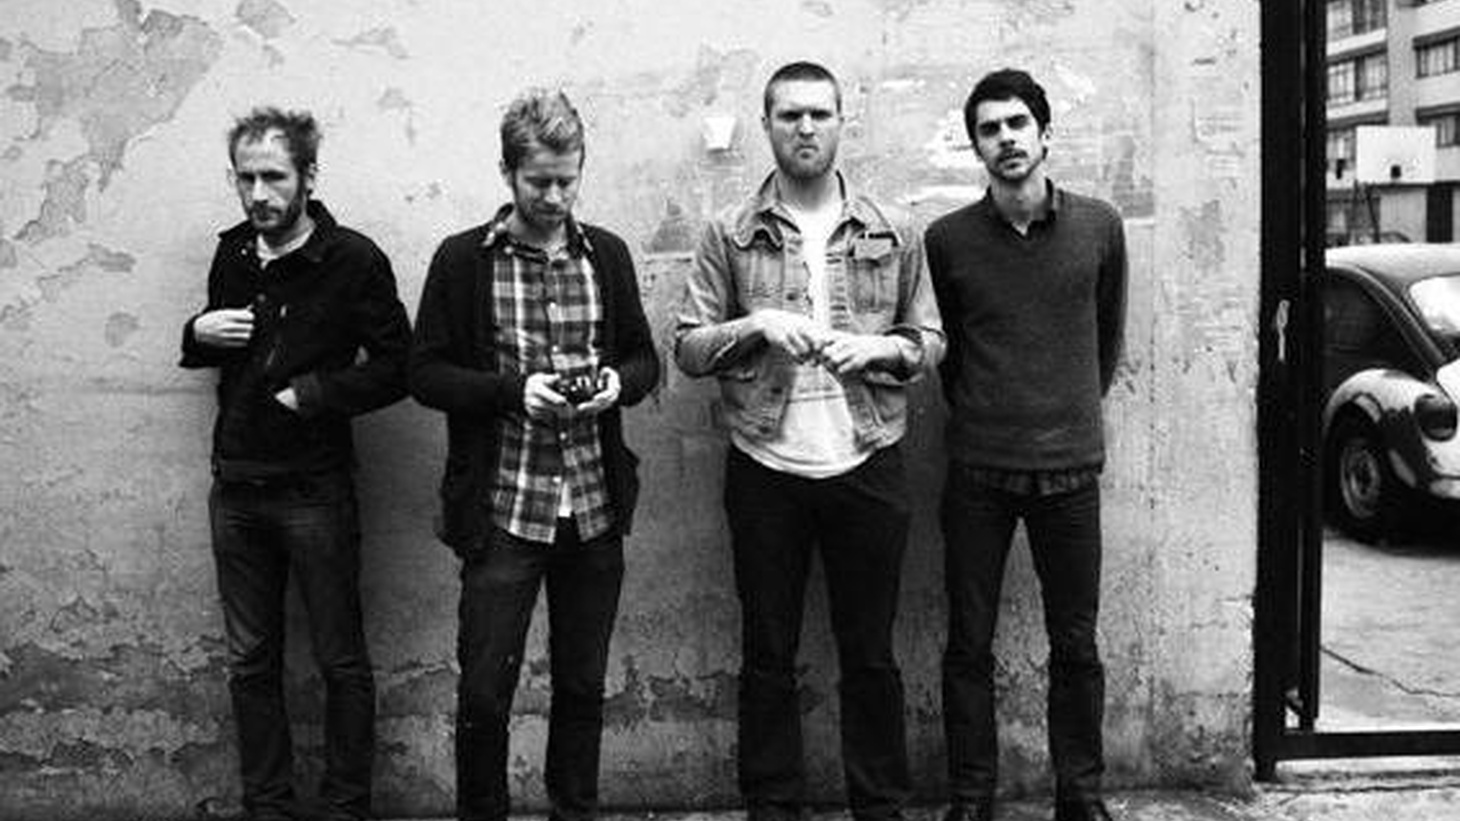 From their humble beginnings in a practice space atop a Fullerton restaurant, Cold War Kids have steadily built a global fan base for their riveting, blues-infused rock. Hear and watch them live when they perform on Morning Becomes Eclectic at 11:15am.